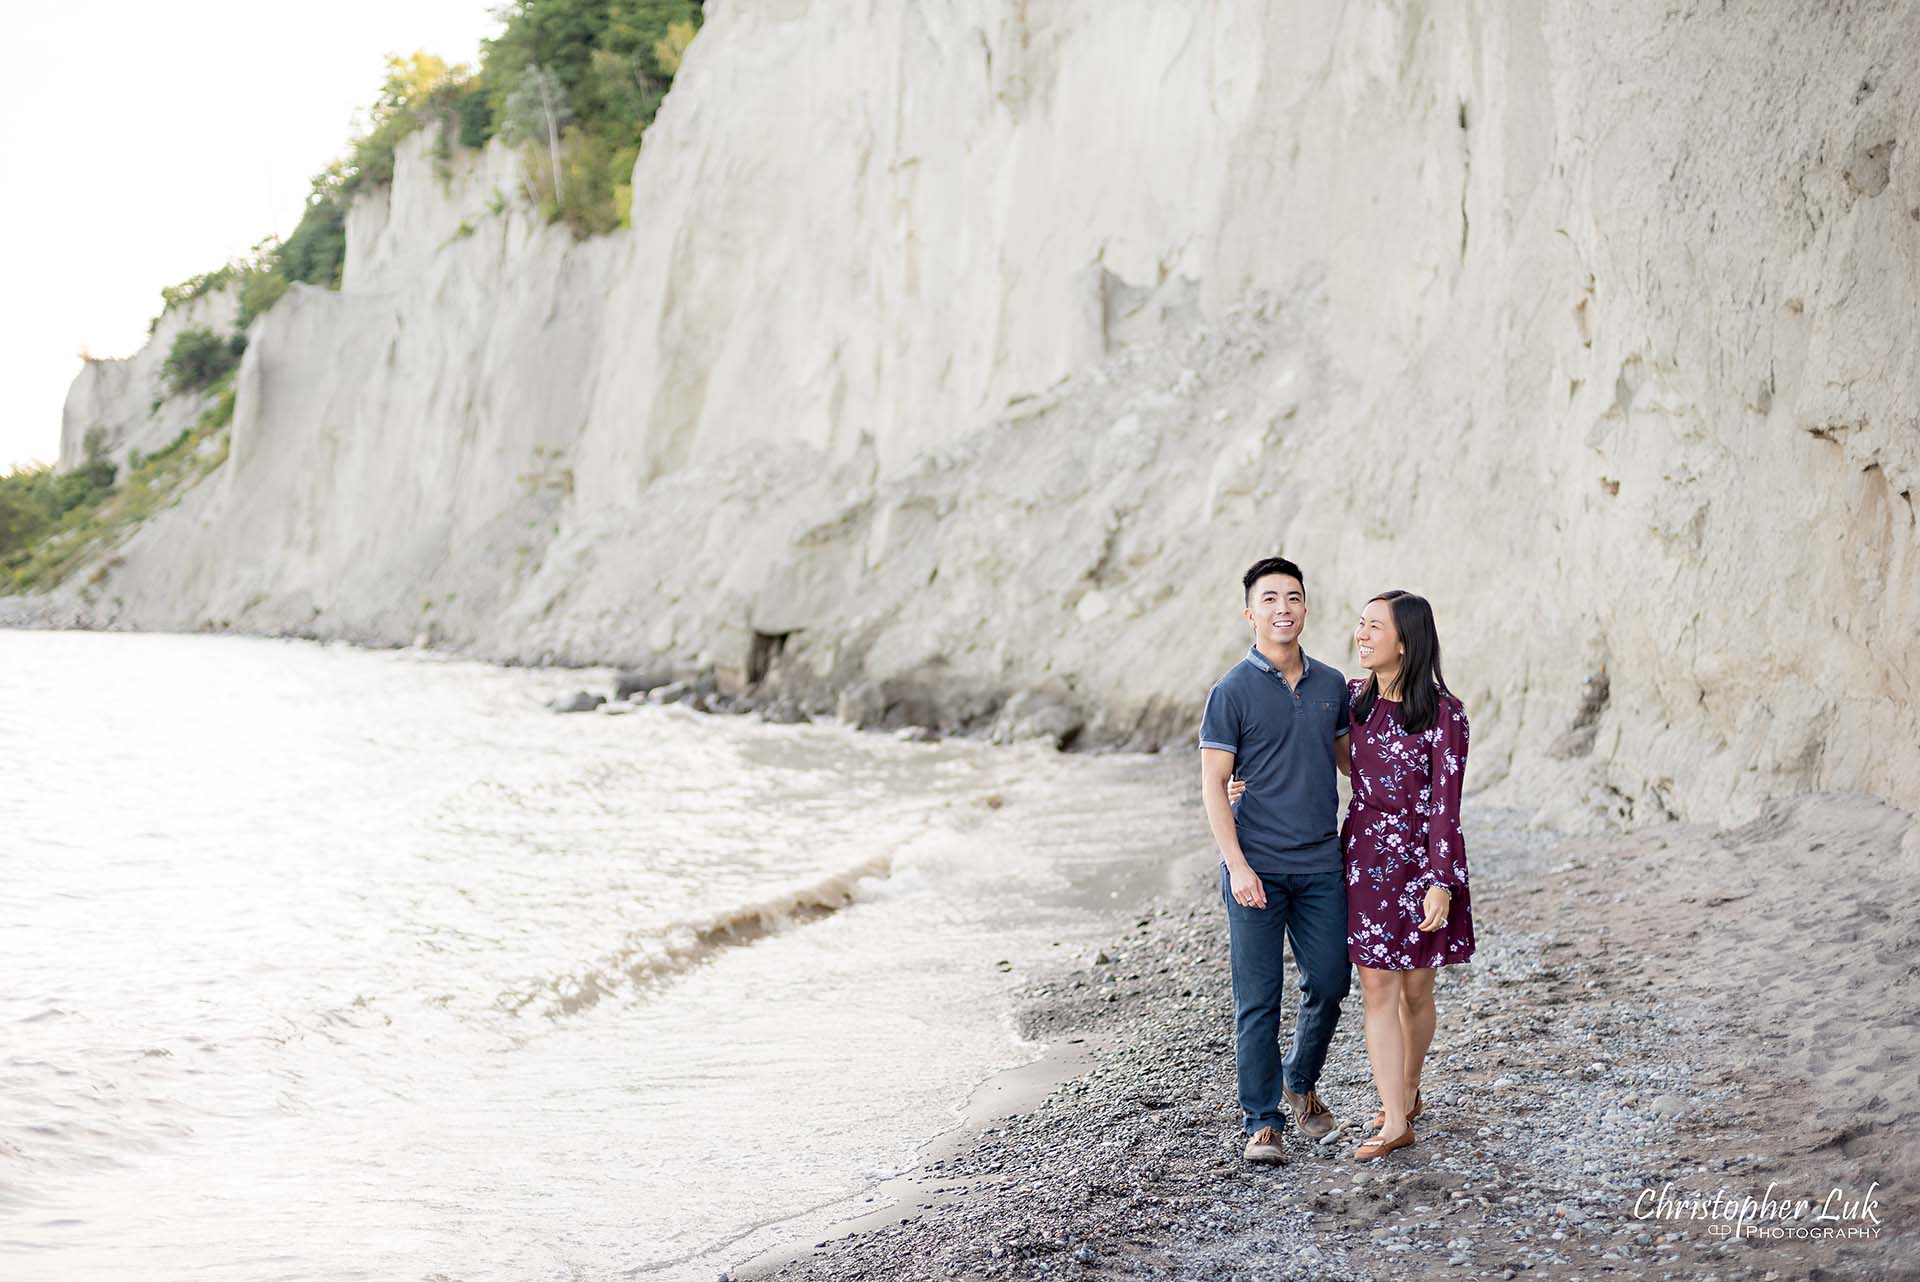 Scarborough Bluffs Beach Park Sunset Surprise Wedding Marriage Engagement Proposal